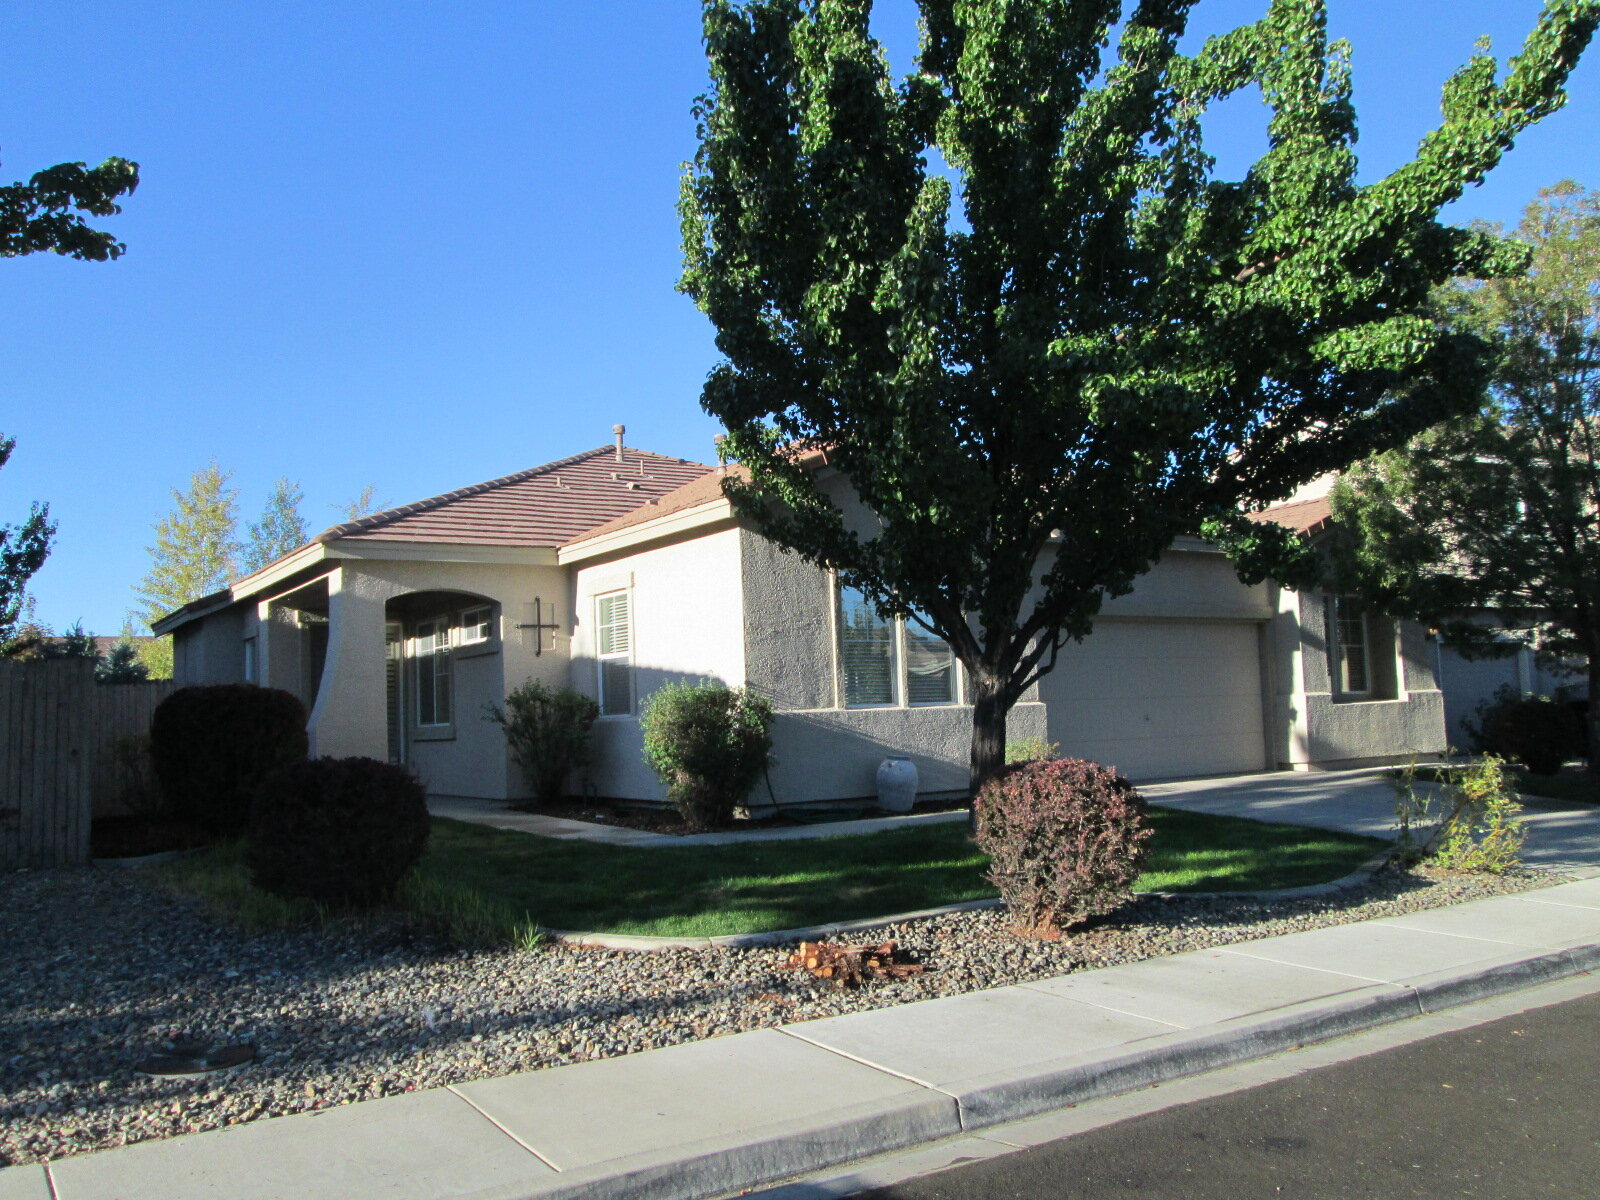 2560 Baton Drive, Reno, NV  3 Bed | 2 Bath | 1,621 sqft | $419,000 Adele Senft | 775.527.3010